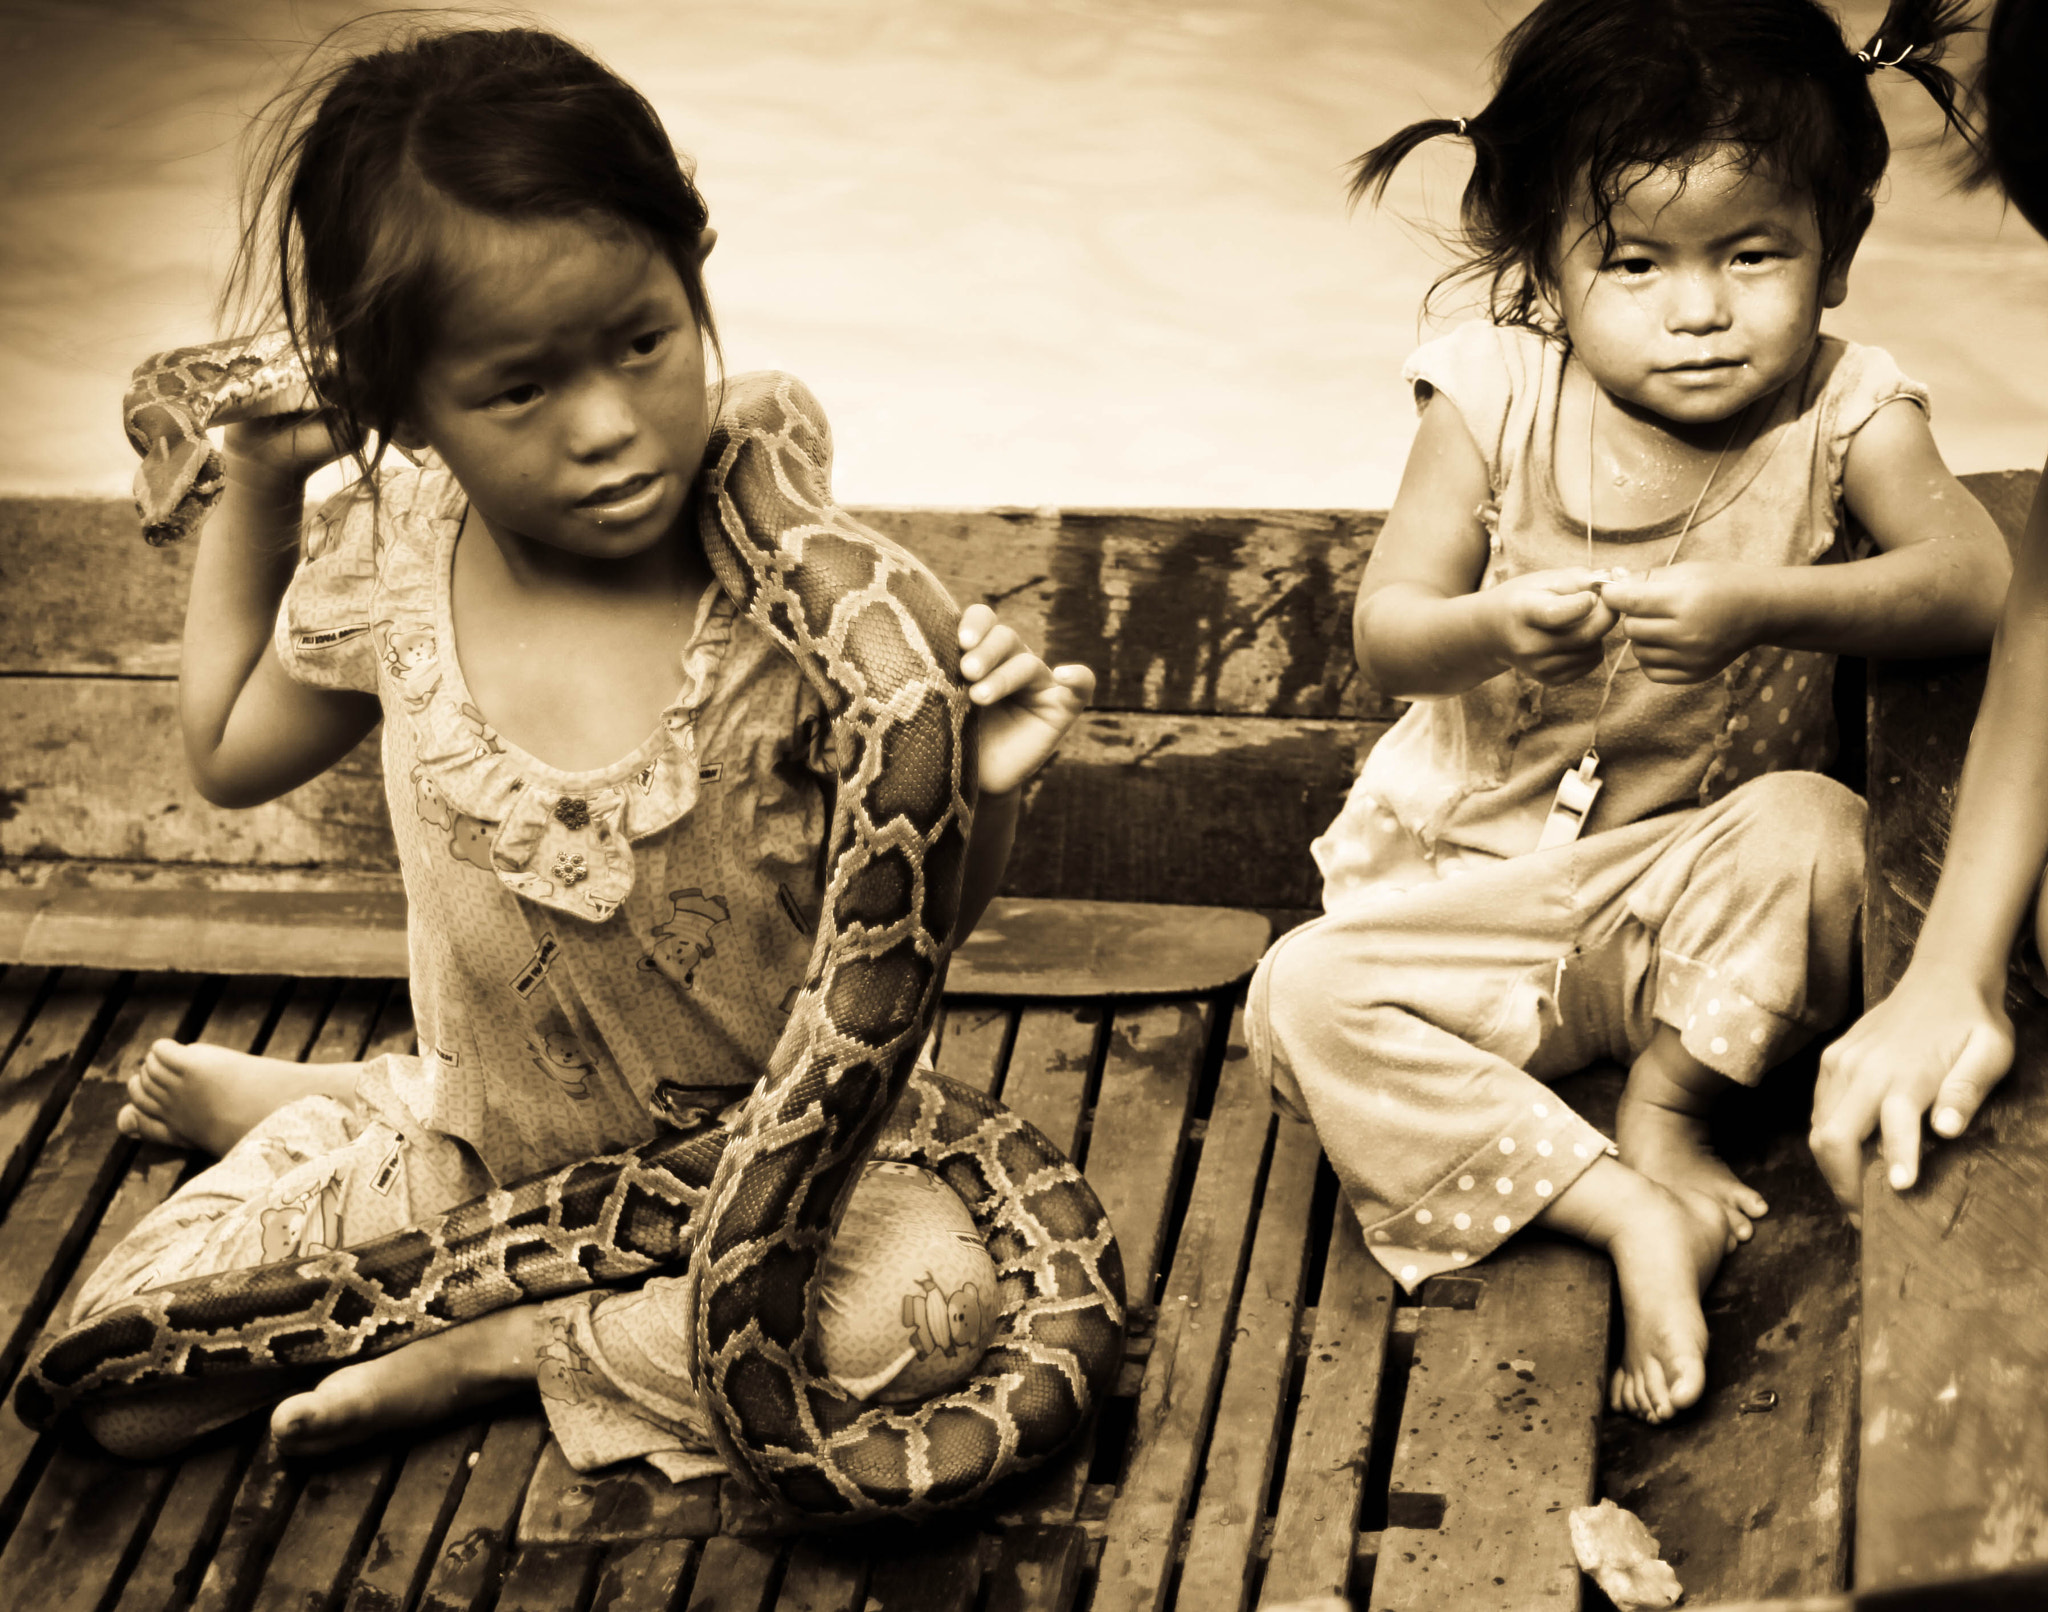 Photograph Girl holding snake by Craig L on 500px